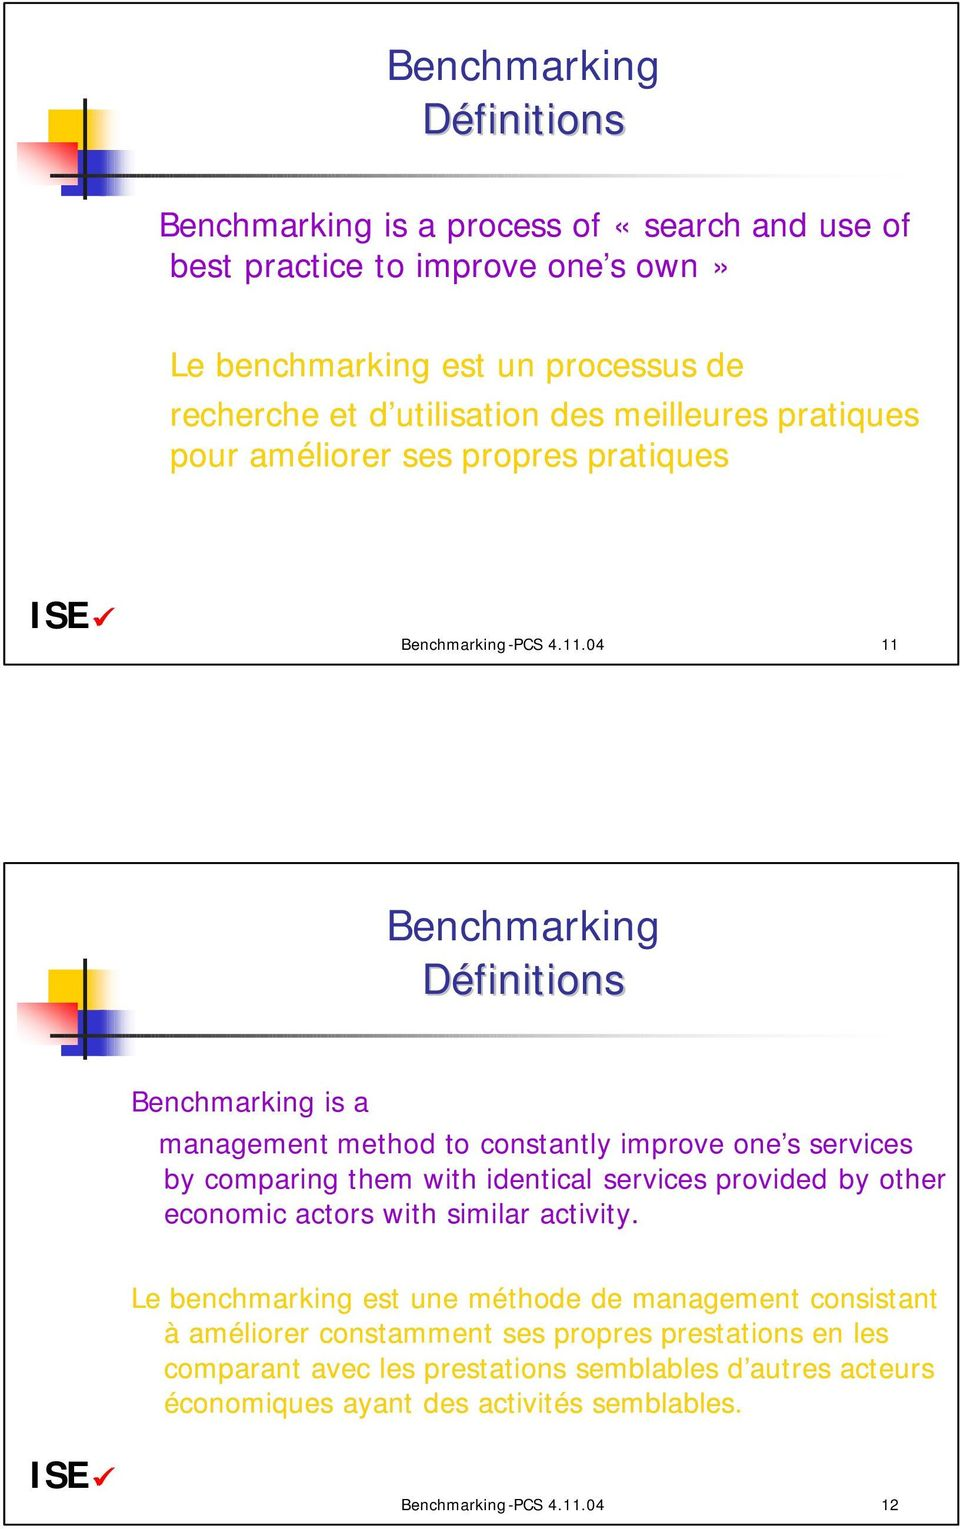 04 11 Benchmarking Définitions Benchmarking is a management method to constantly improve one s services by comparing them with identical services provided by other economic